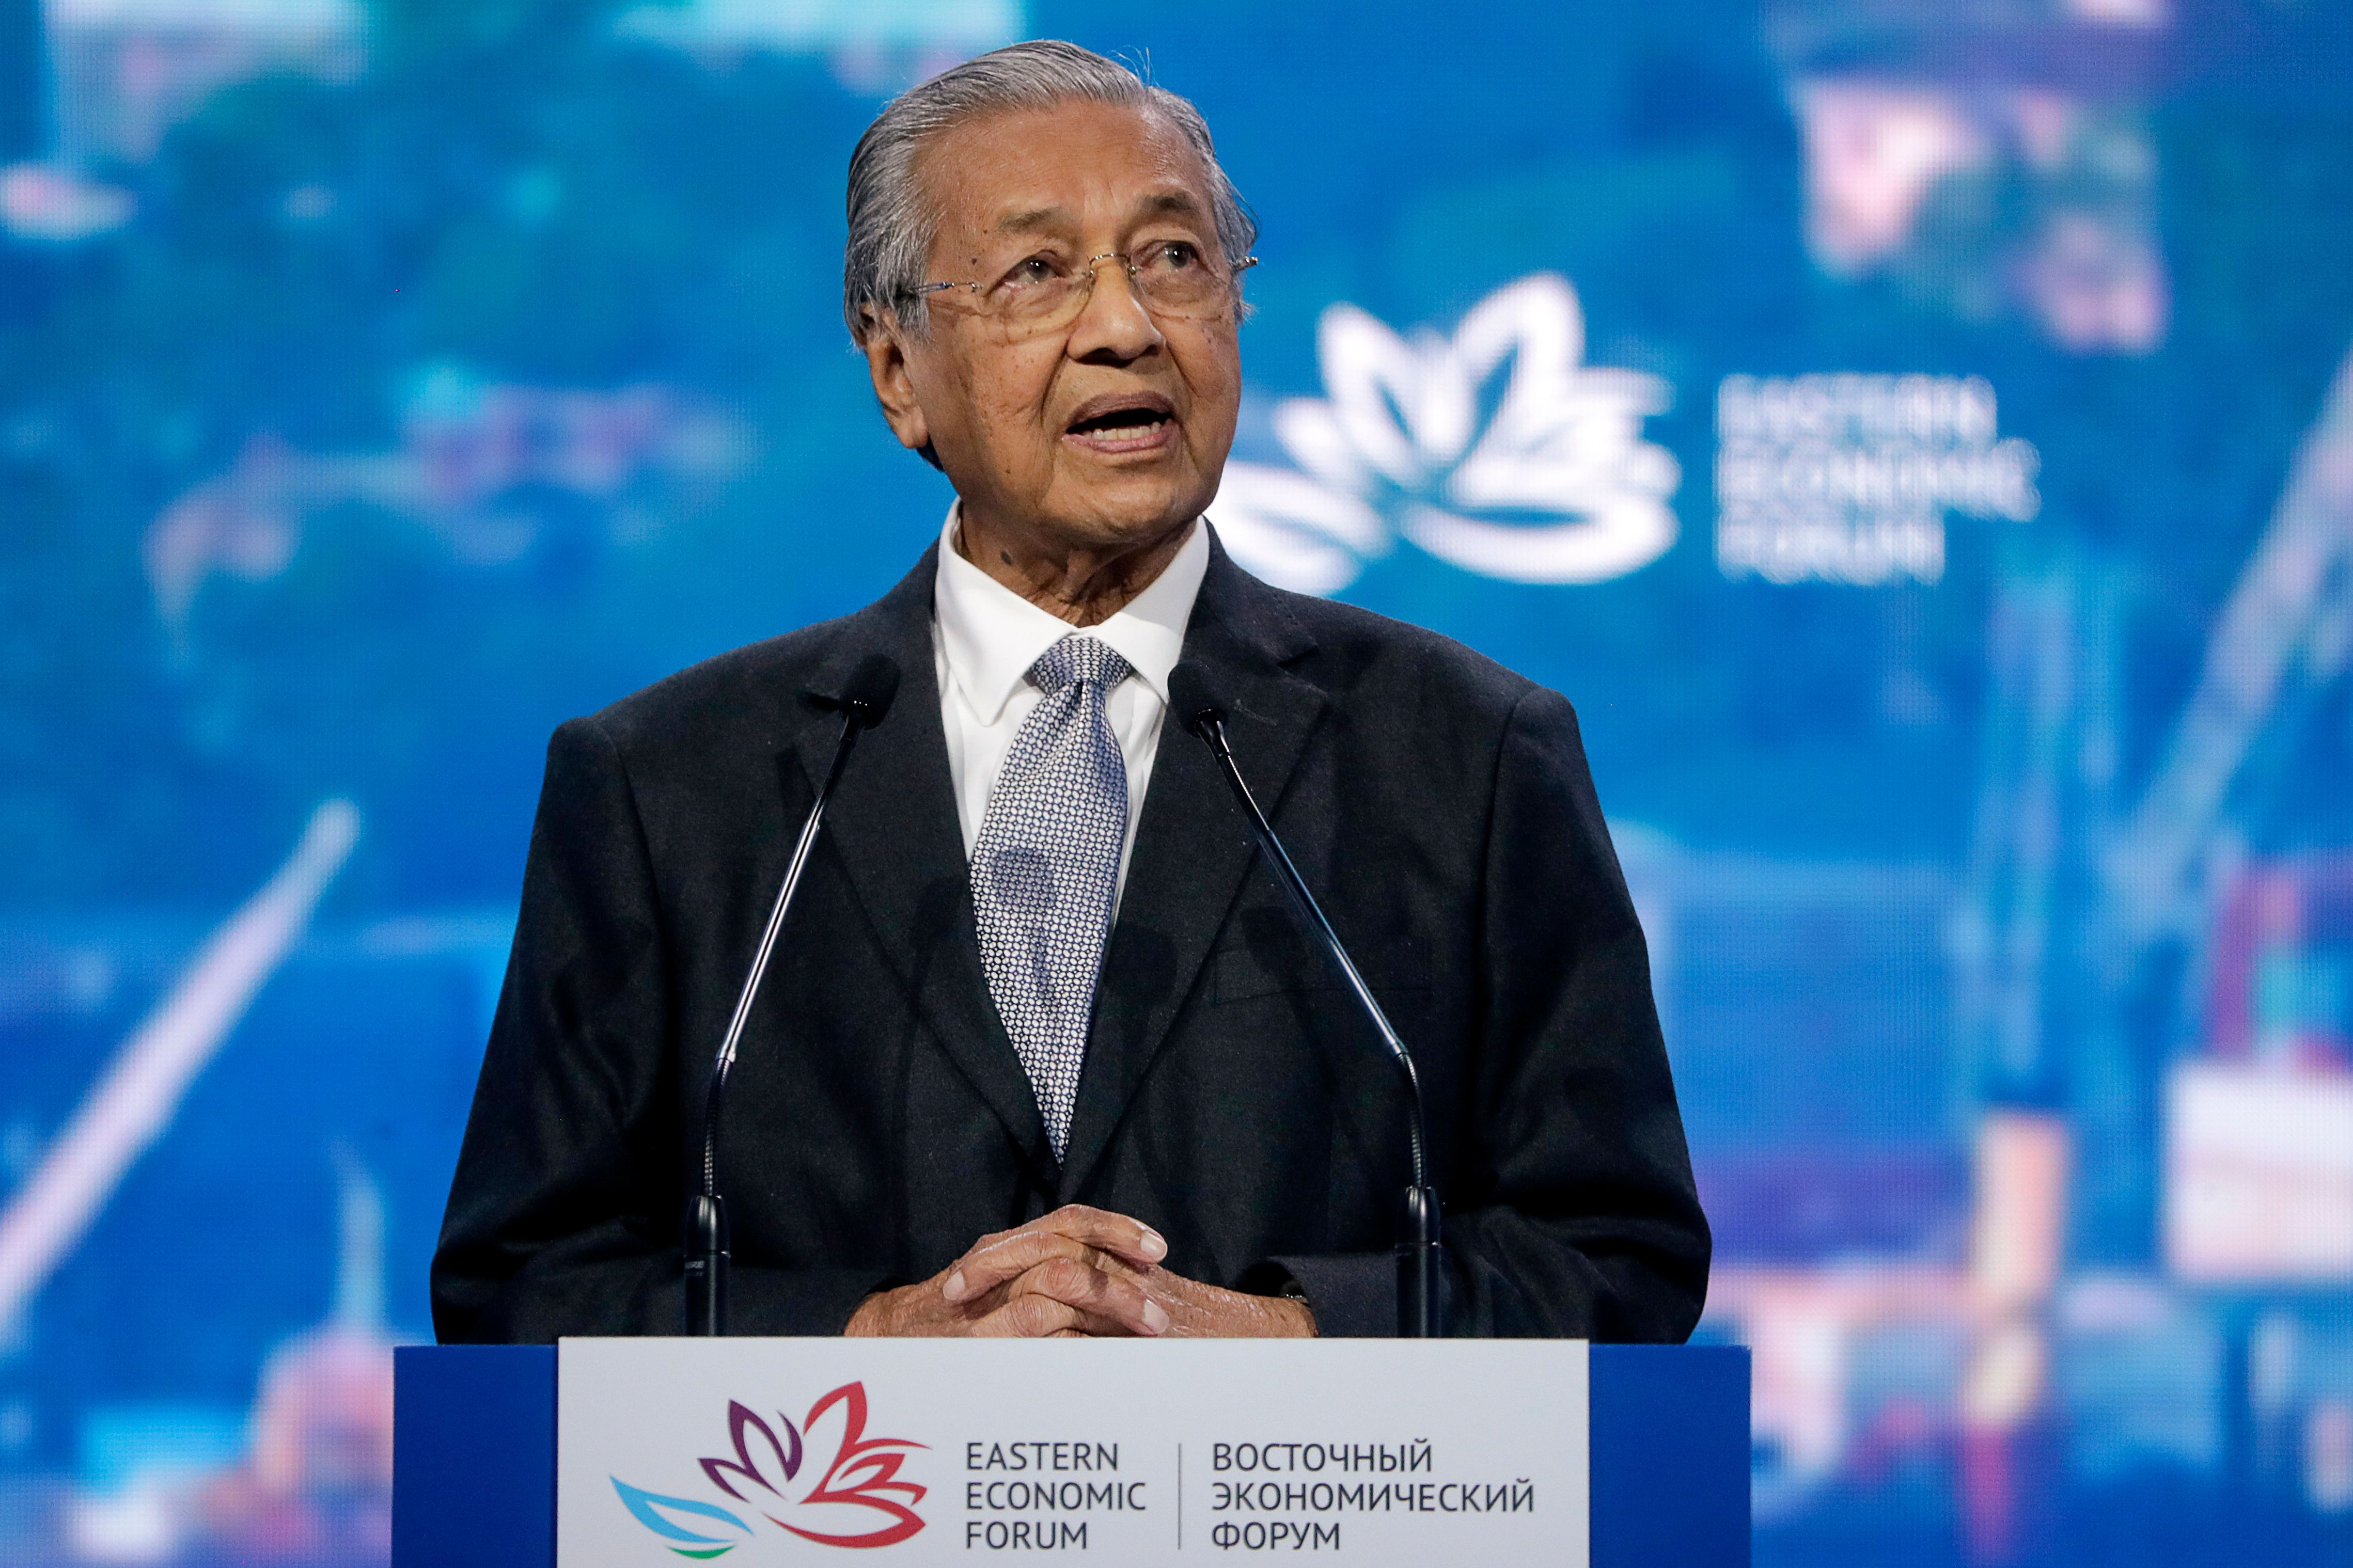 Malaysian Prime Minister Mahathir Mohamad submits resignation to king - Axios